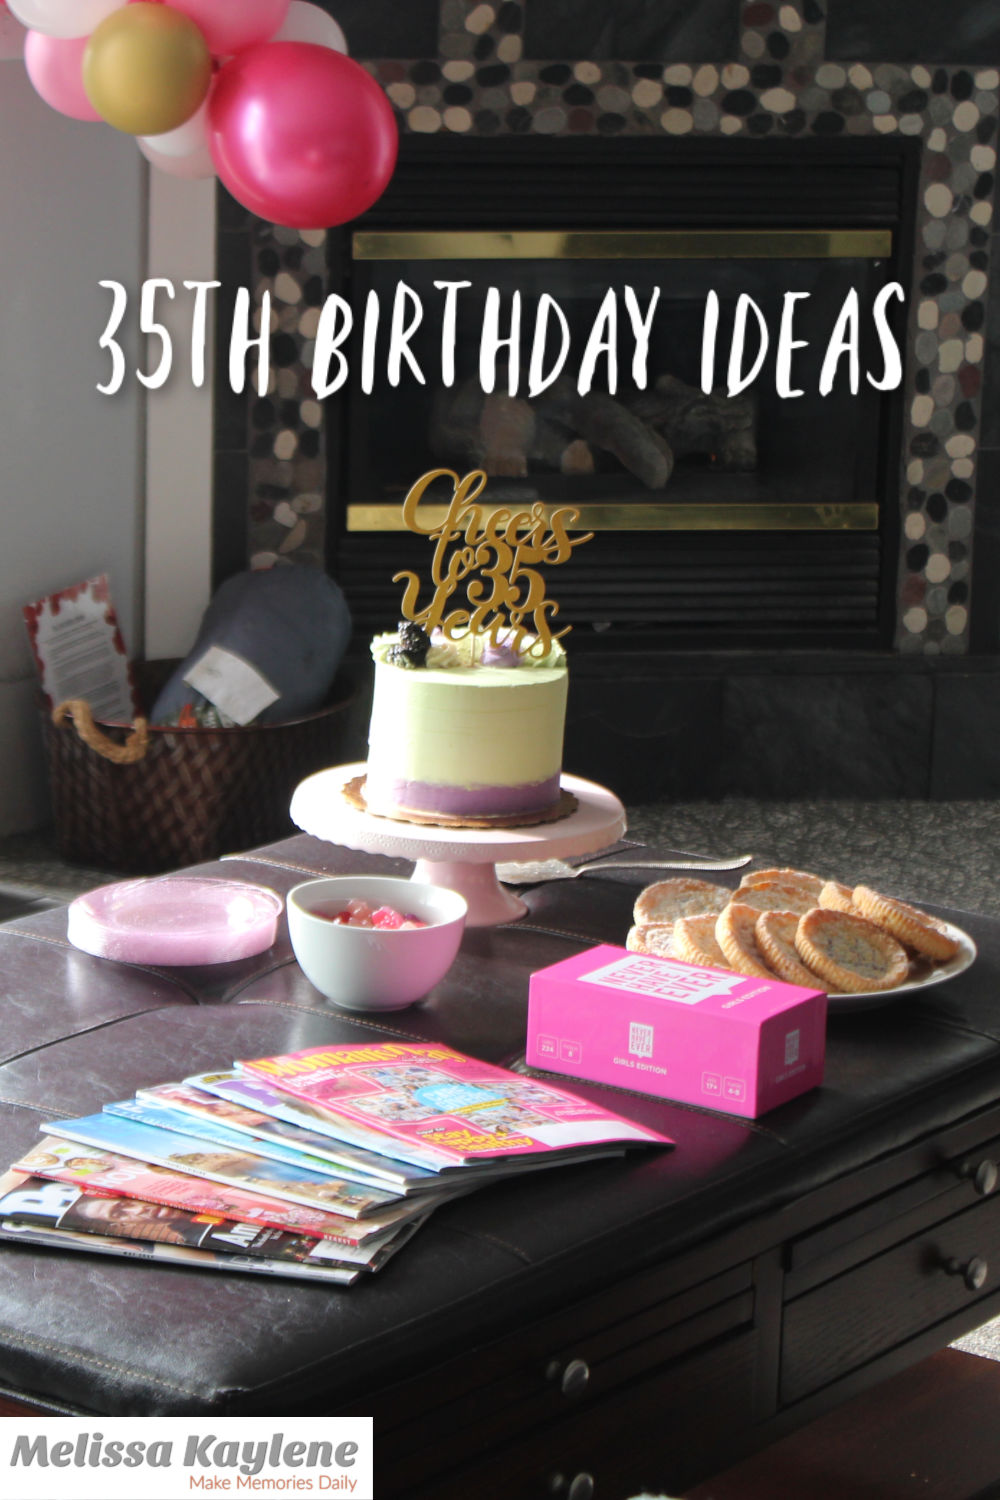 35th birthday ideas